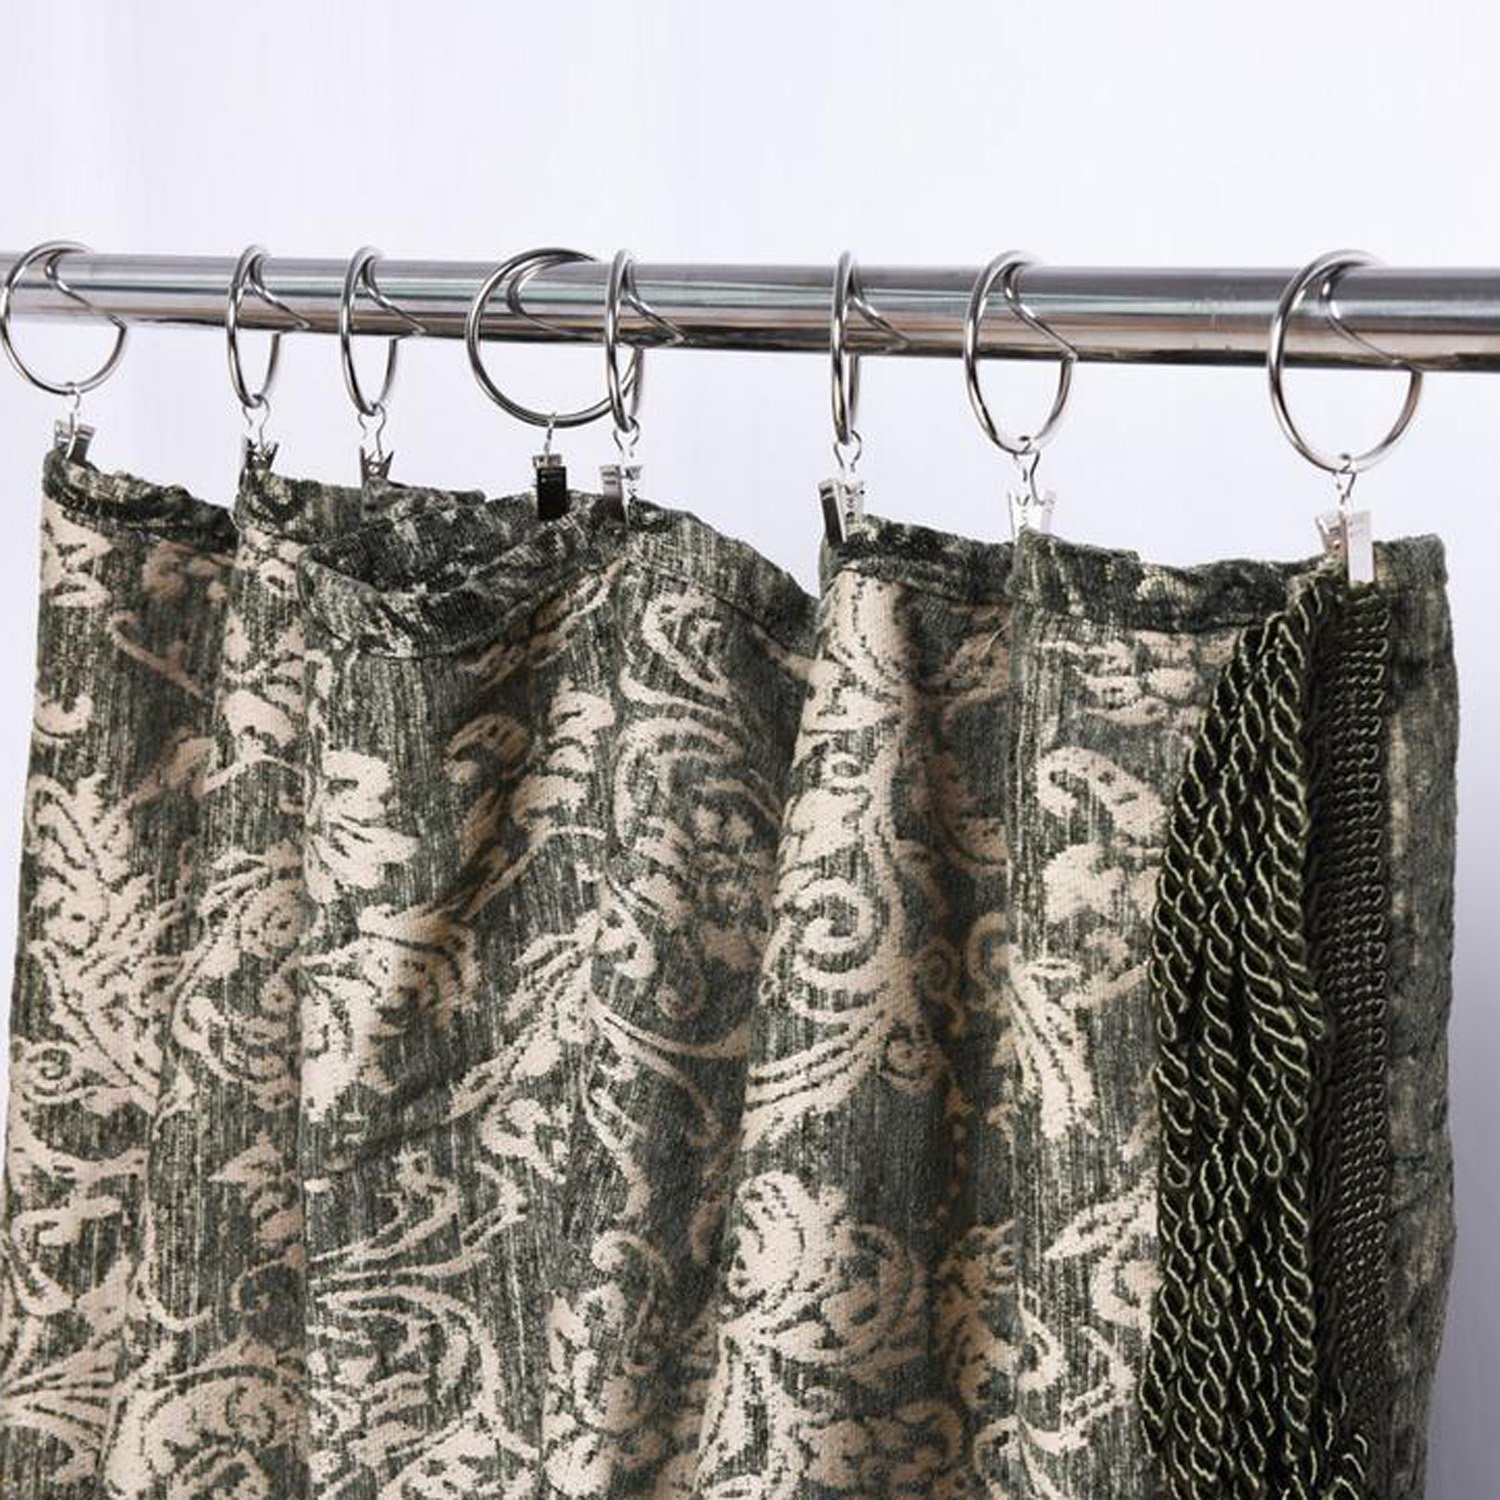 Set of 20 roman ring curtain ring curtain accessories curtain clip hook WOTOY